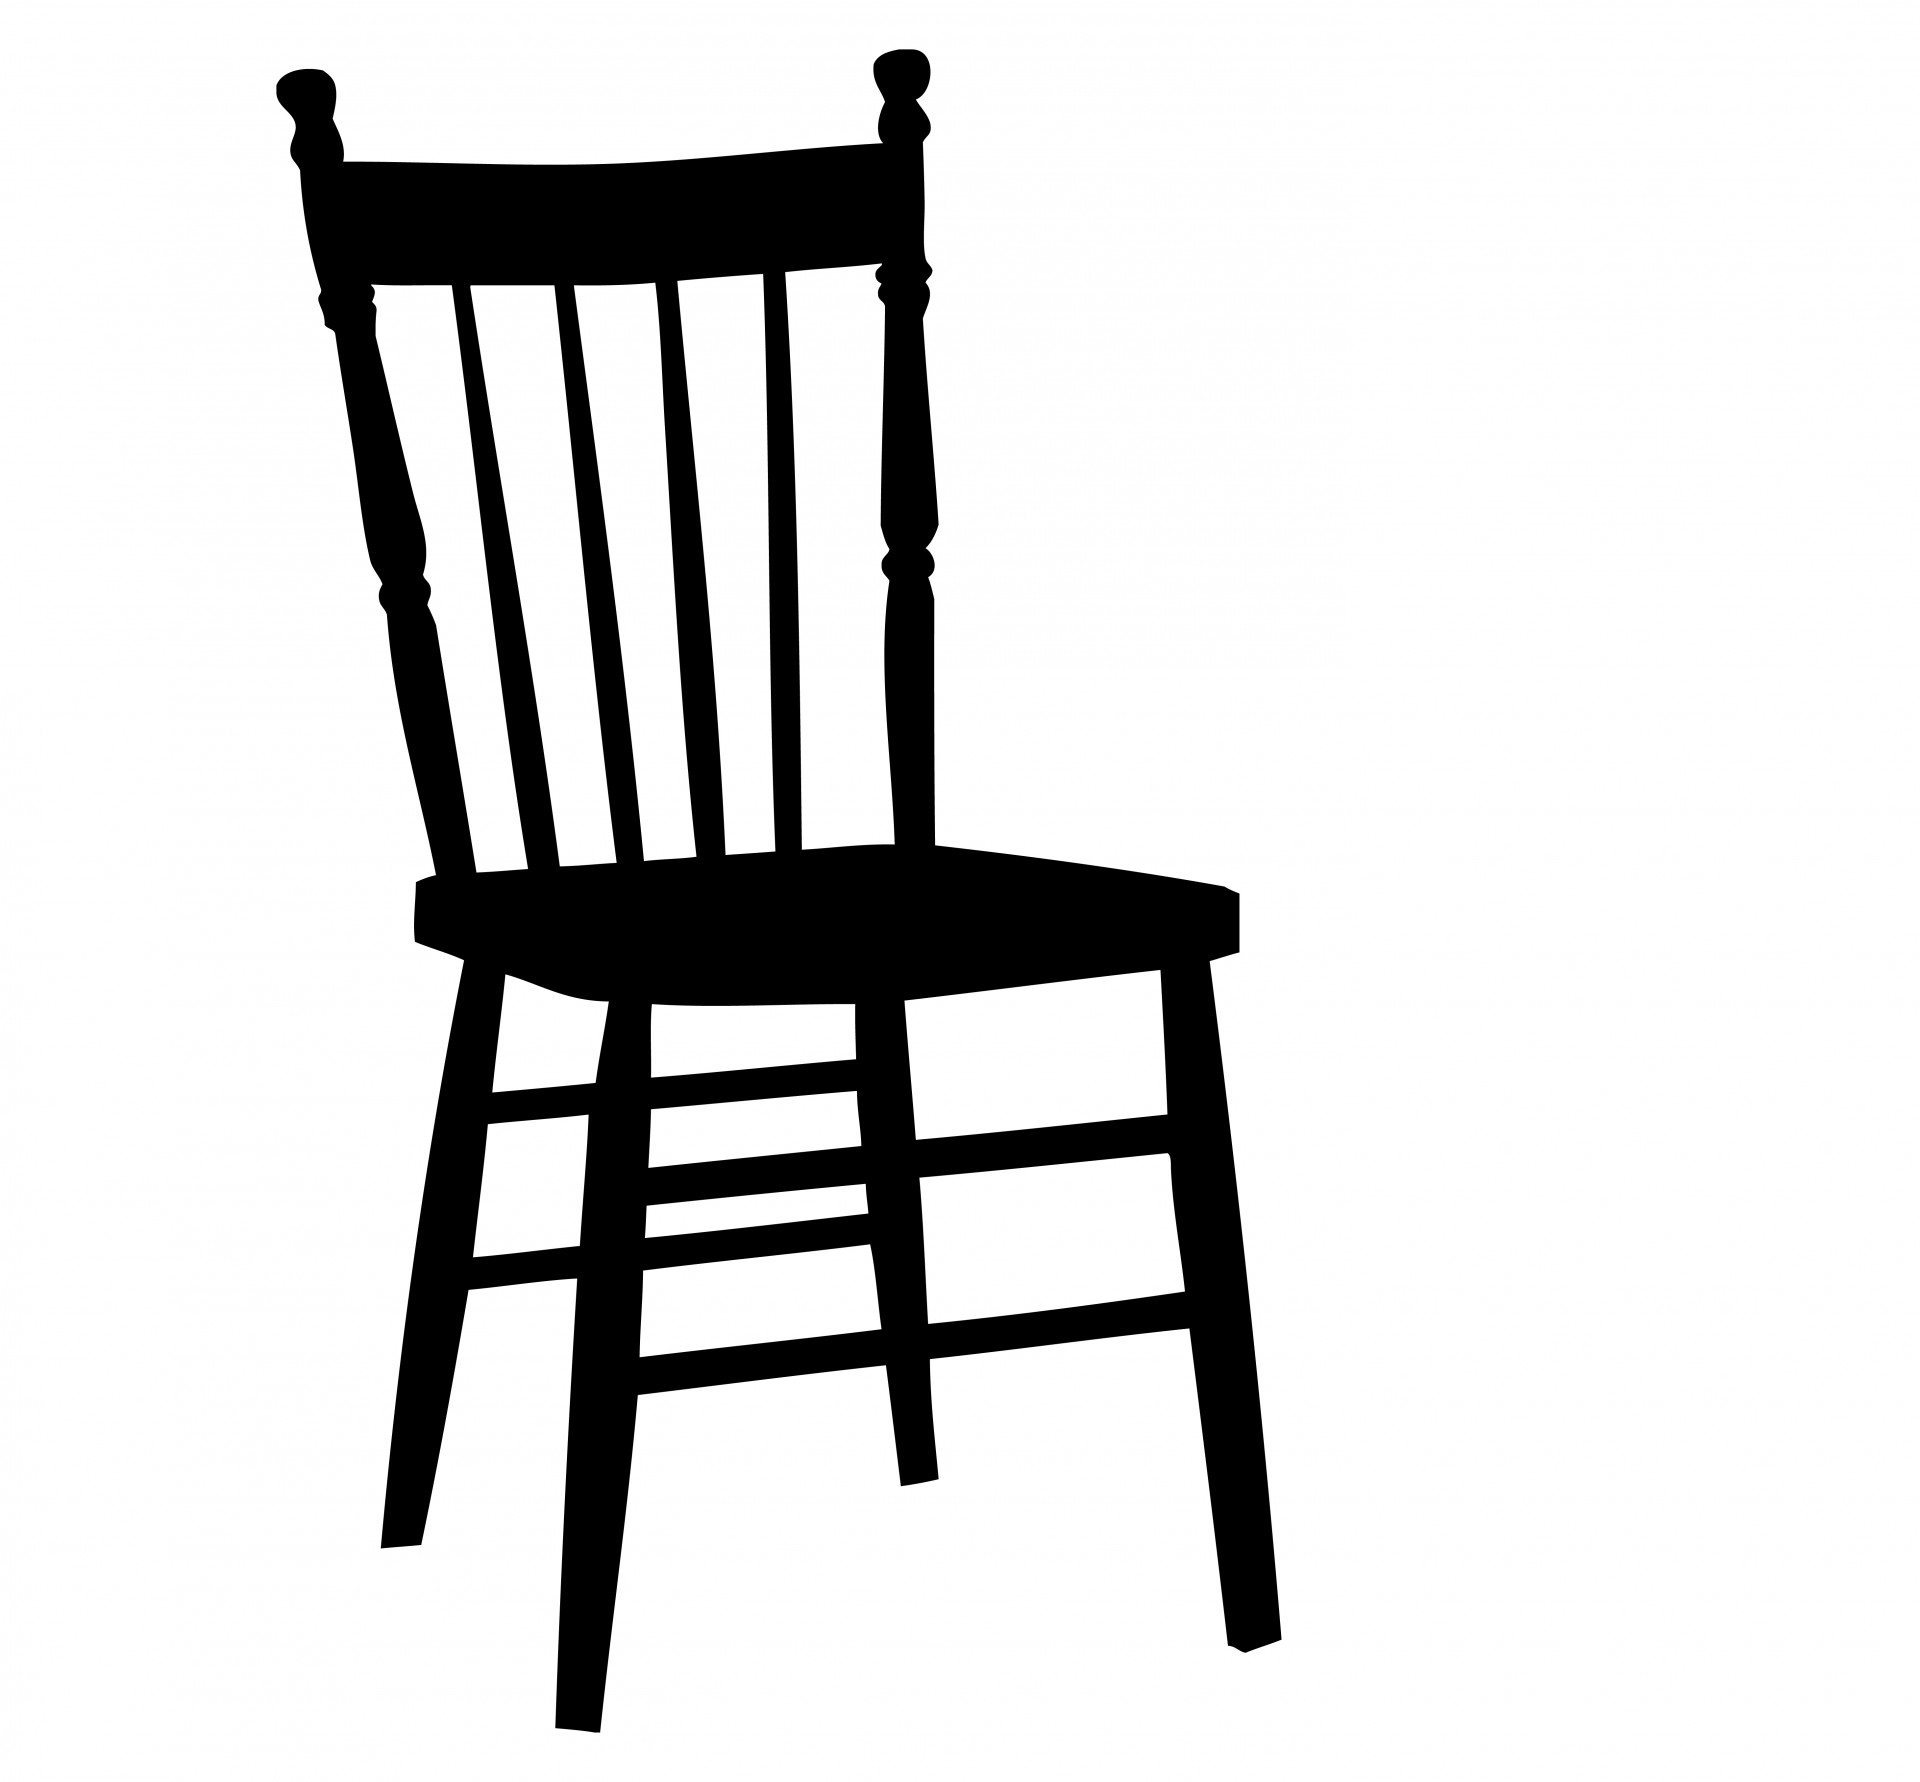 Chair clipart. Free stock photo public